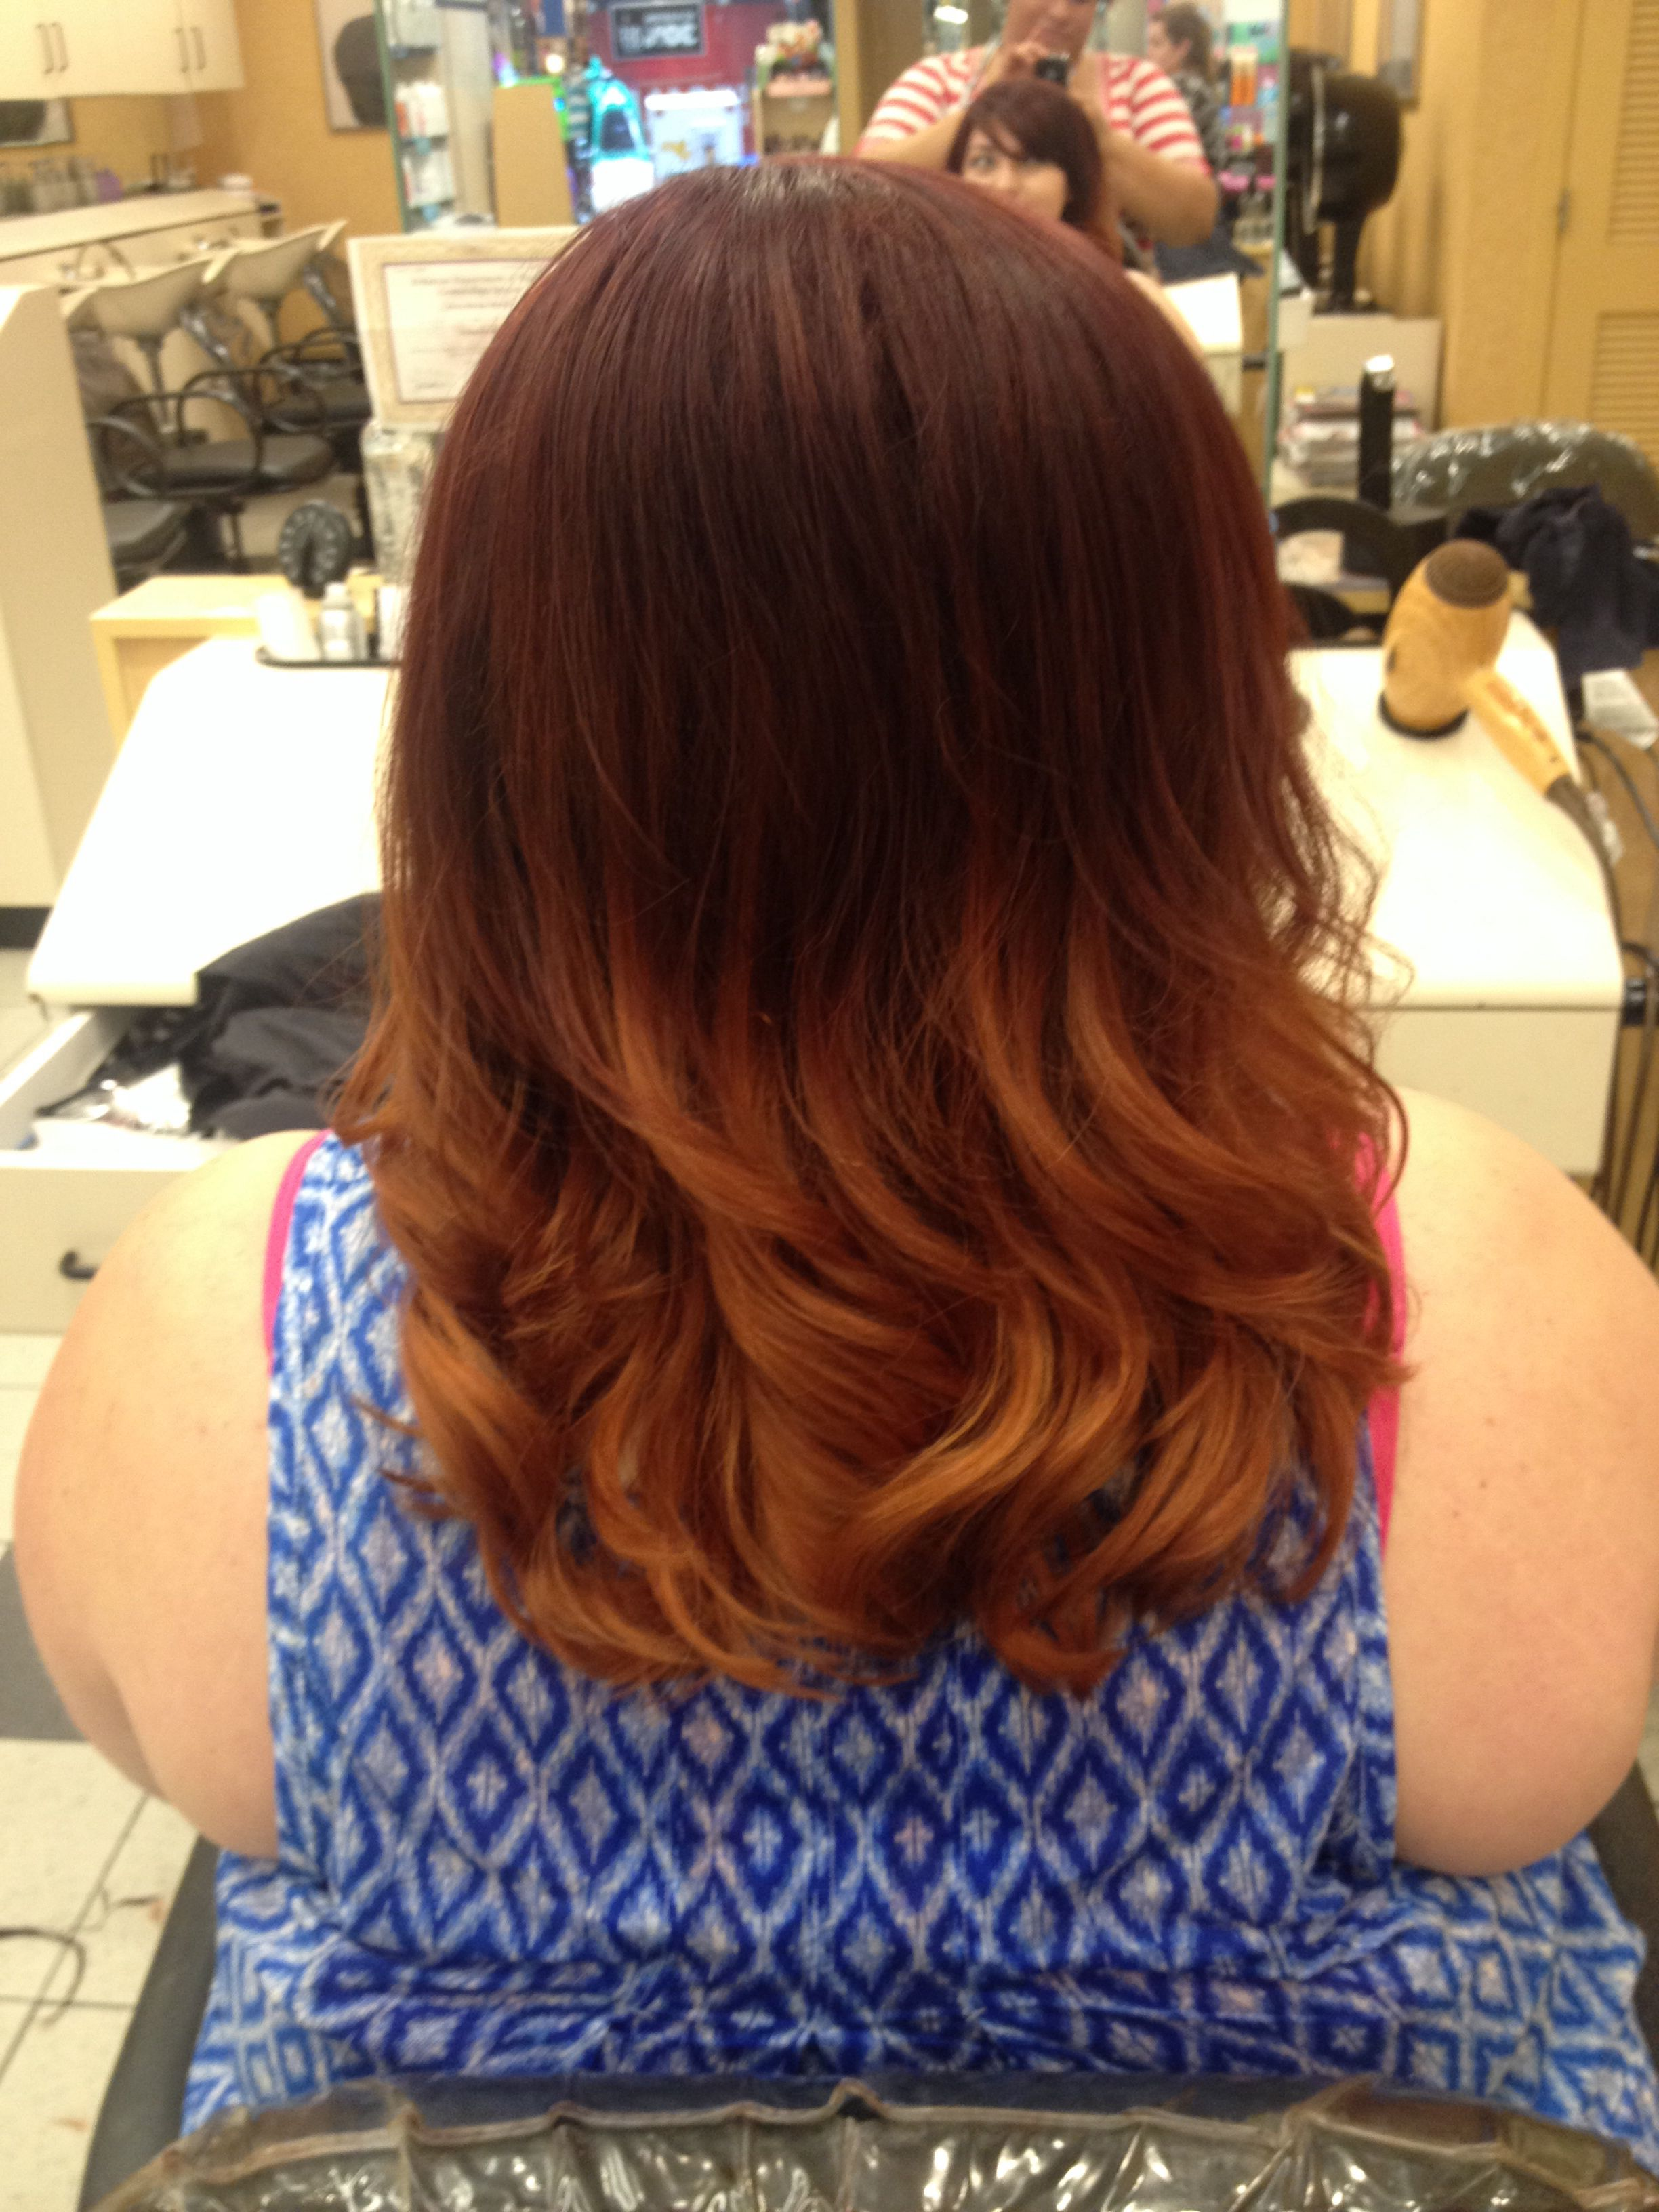 Ashley at regis salon in fayetteville ar is amazing she for Abstract salon fayetteville ar